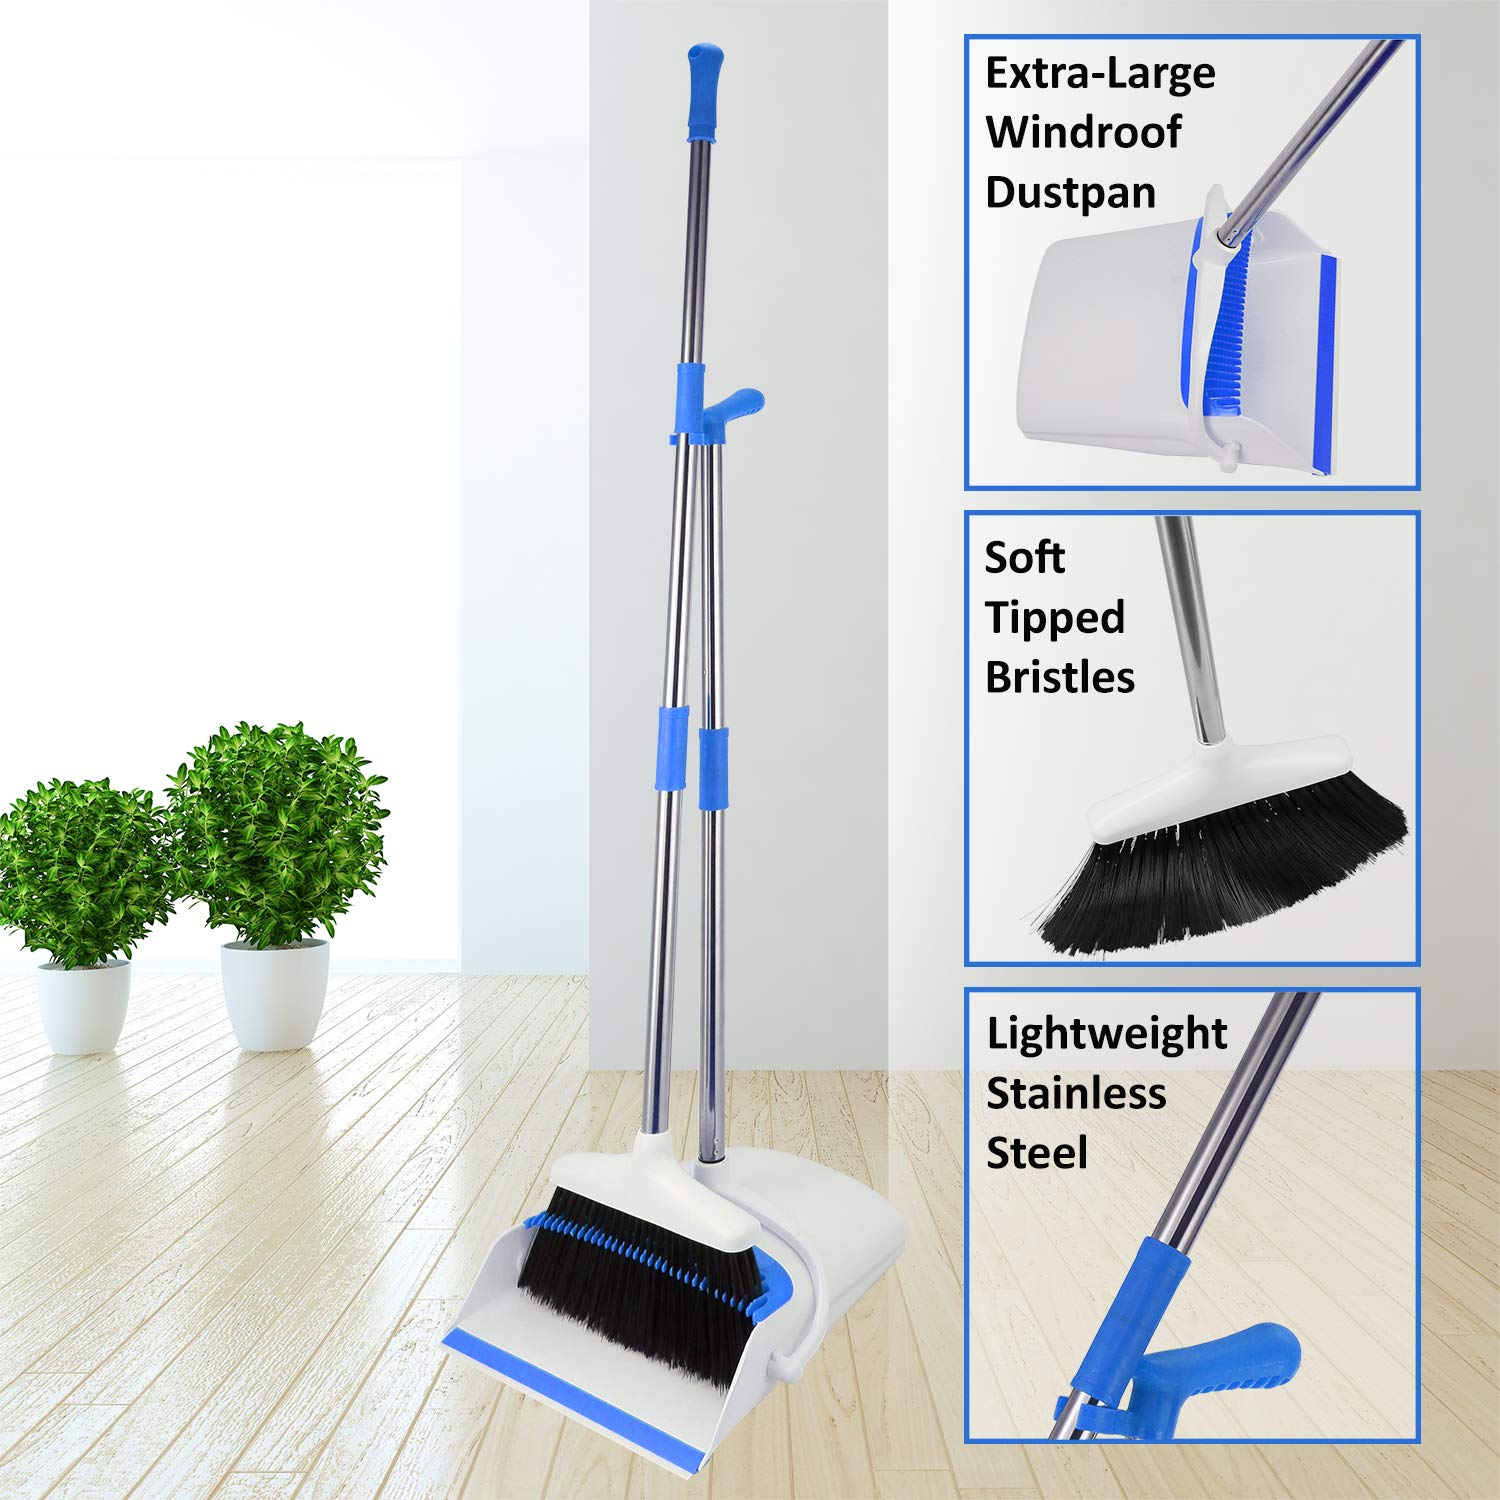 Broom And Dustpan Set - Strongest 30% Heavier Duty - Upright Standing Dust Pan With Extendable Broomstick For Easy Sweeping - Easy Assembly Great Use For Home, Office, Kitchen, Lobby Etc.- By Kray by kray (Image #7)